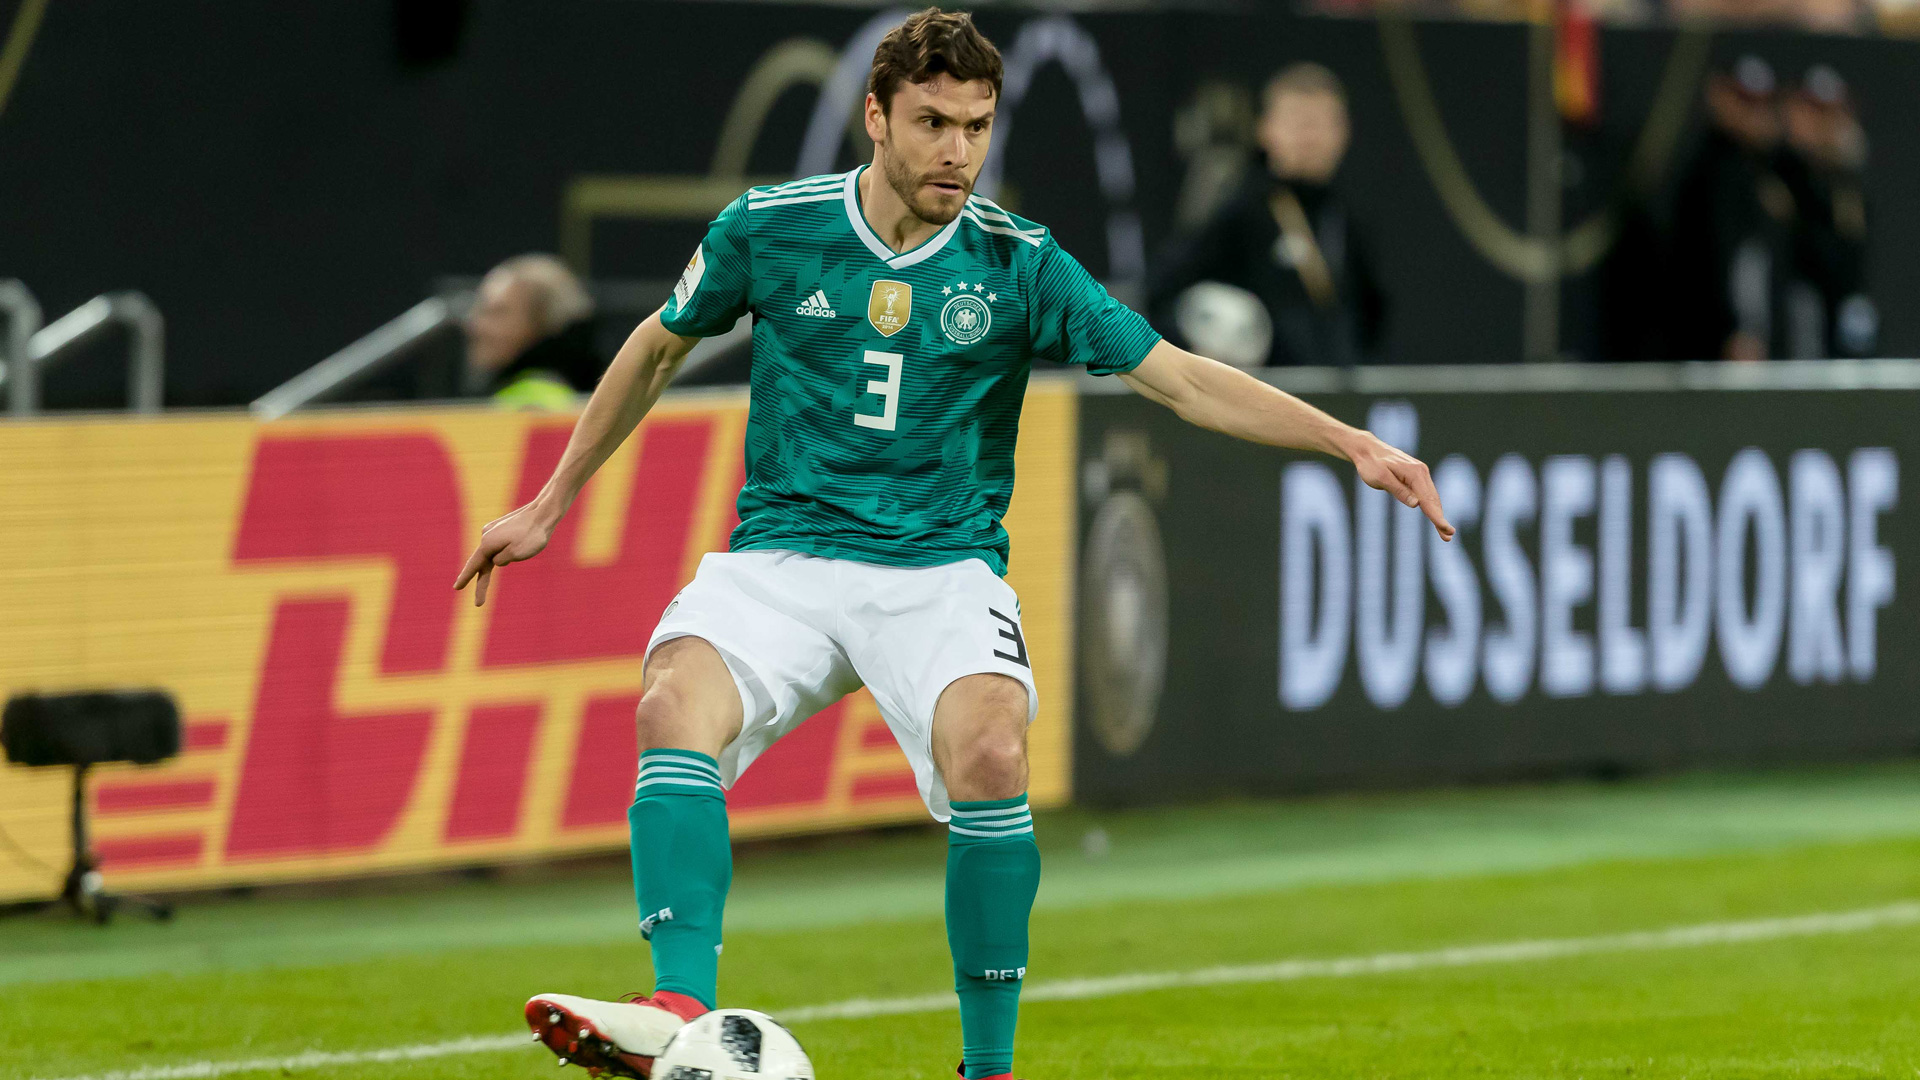 Jonas Hector DFB Germany 2018